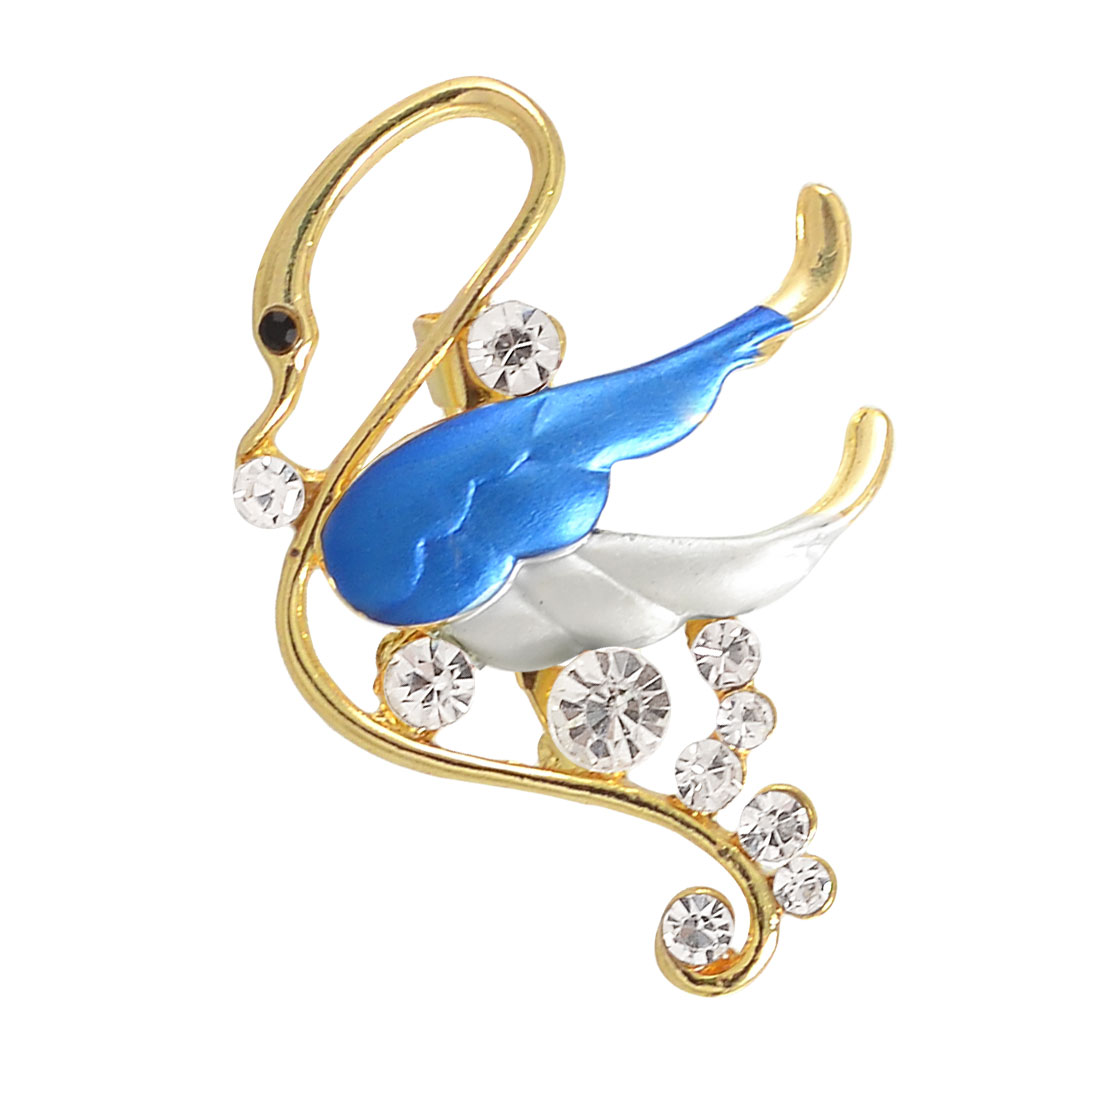 Ladies Glittery Rhinestone Decor White Wing Swan Safety Pin Brooch Broach